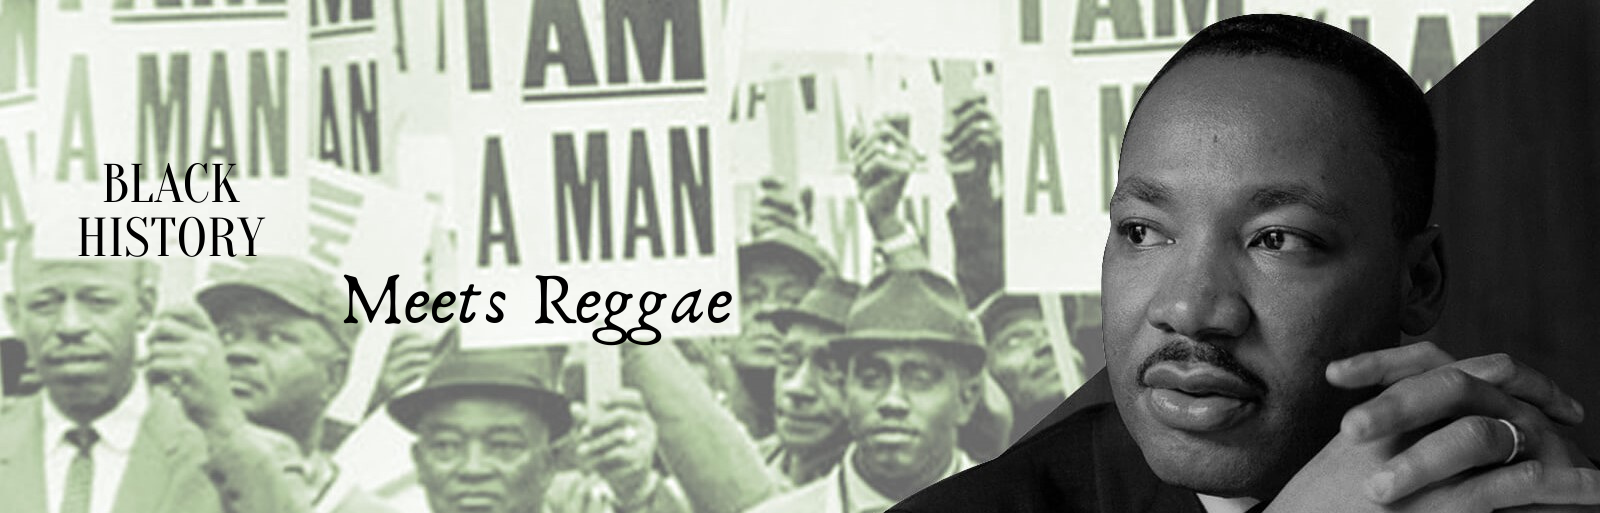 CITY OF MIRAMAR ANNOUNCES CELEBRATIONS IN HONOR OF REVEREND. DR. MARTIN LUTHER KING DAY and BLACK HISTORY MEETS REGGAE MONTH